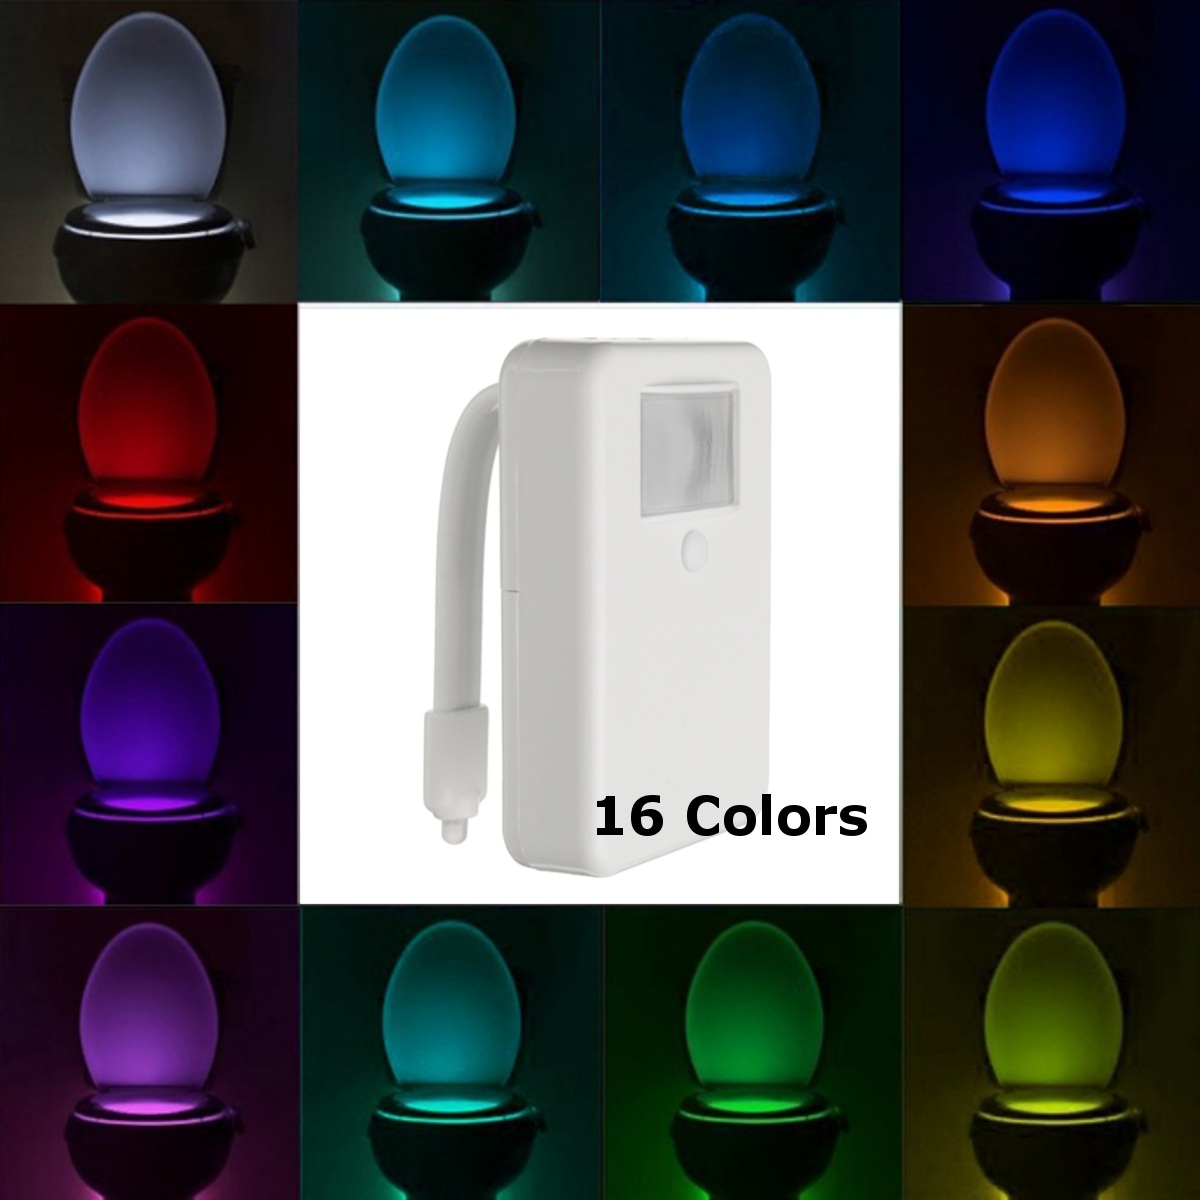 Motion Sensor Toilet Bowl Light Colorful Home Toilet Bathroom Motion Activated Dimmable LED Light Battery Operated Night Light